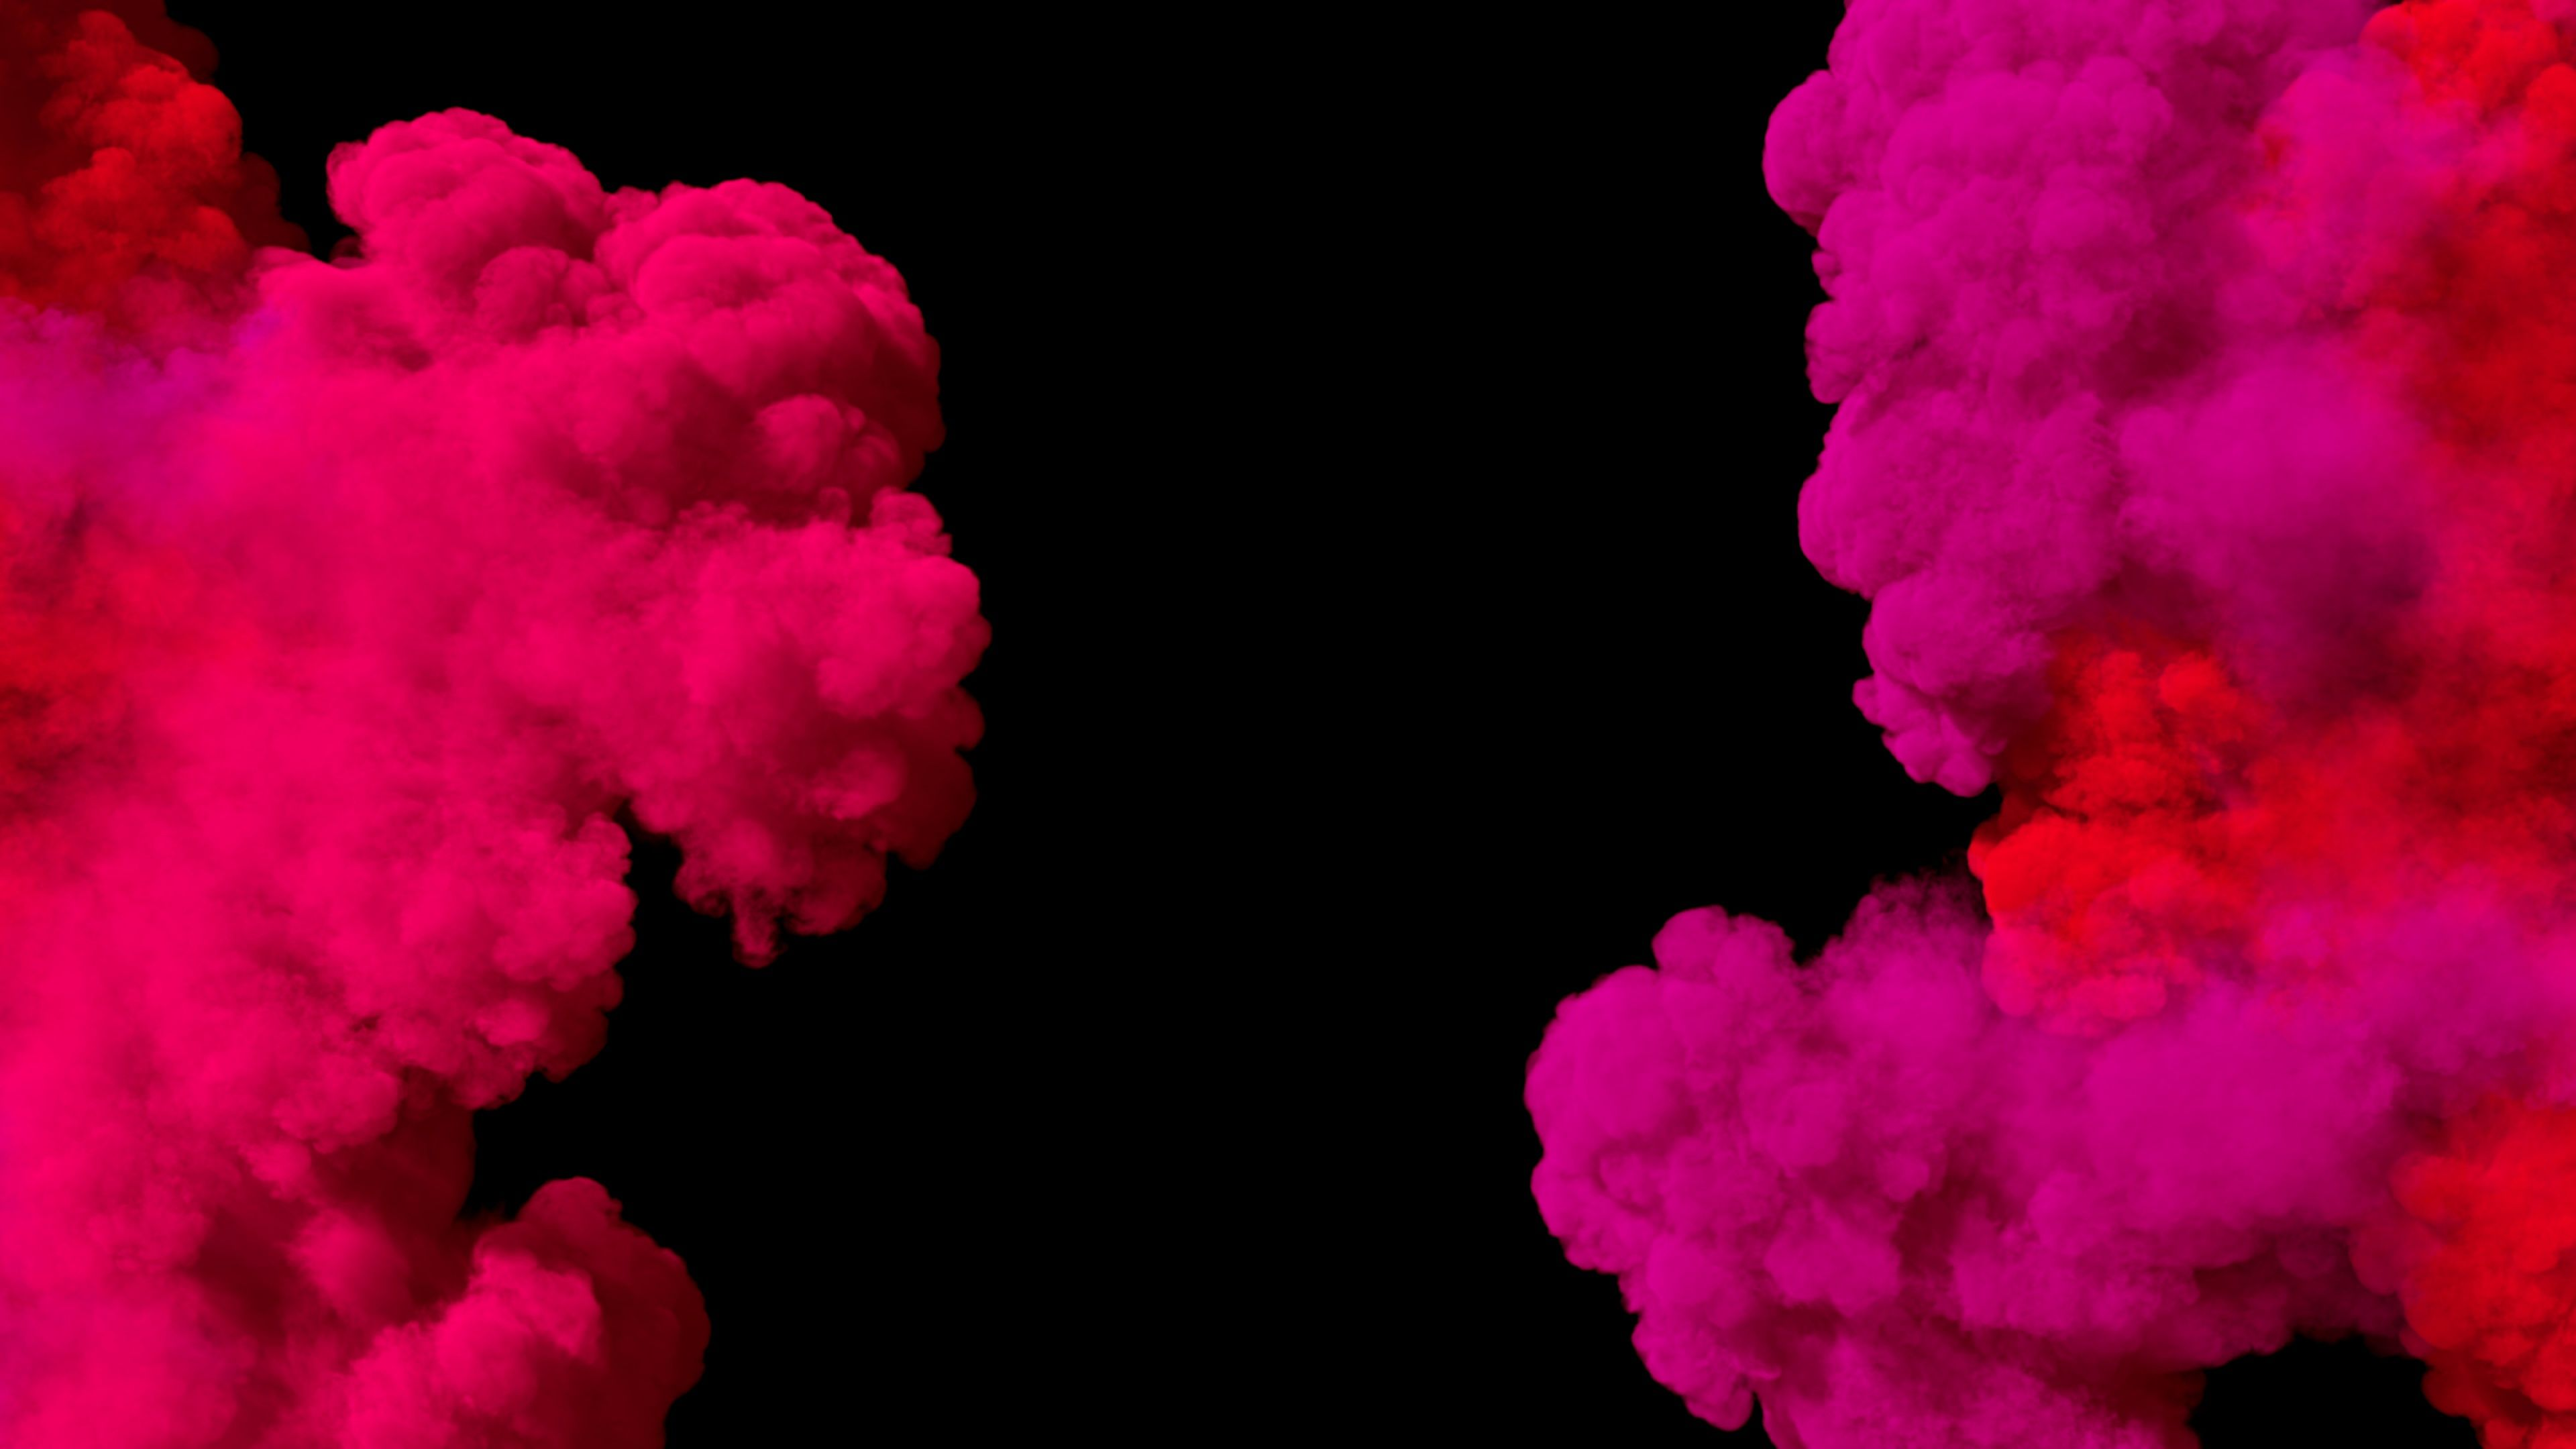 Spreading Colored Smoke Wiping Frame Horizontally Long Distance Stock Footage Wiping Frame Smoke Spreading Colored Smoke Color Smoke